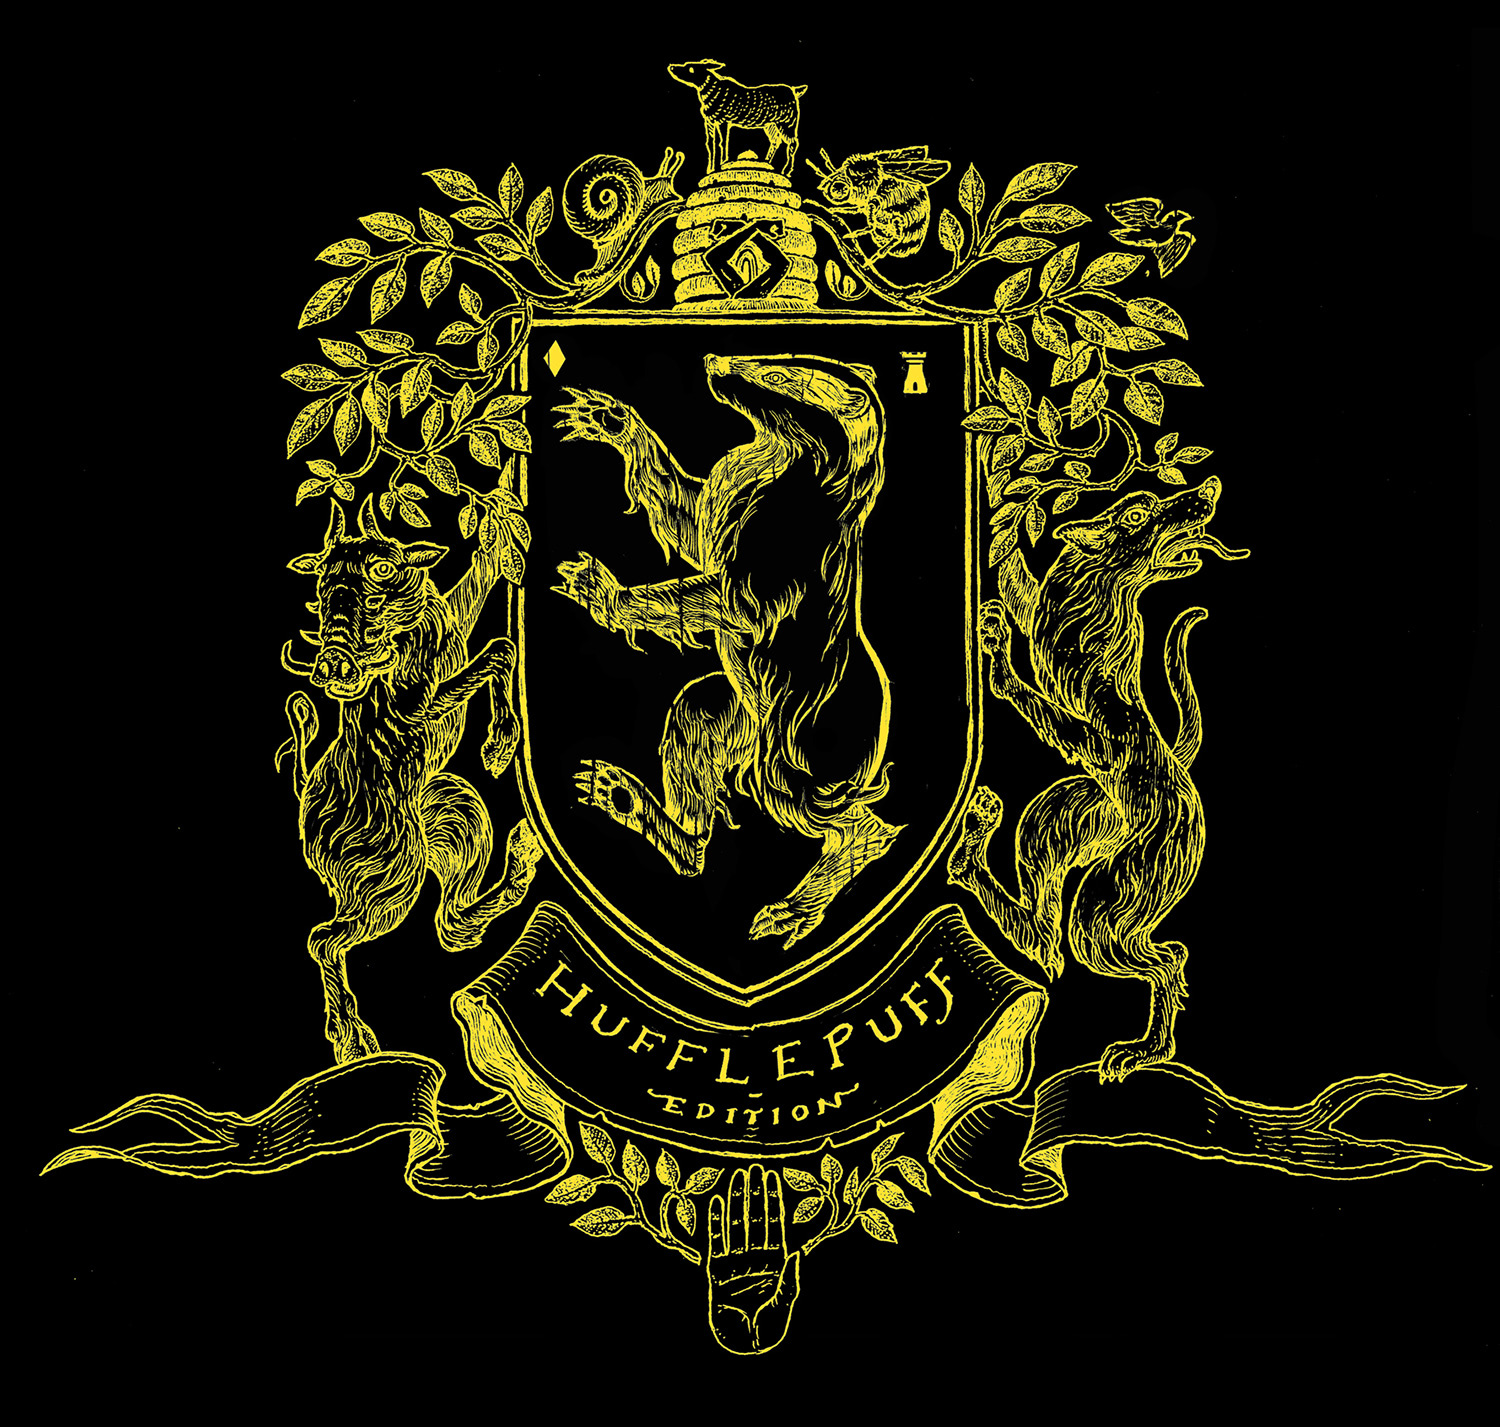 'Philosopher's Stone' house edition crest (Hufflepuff)